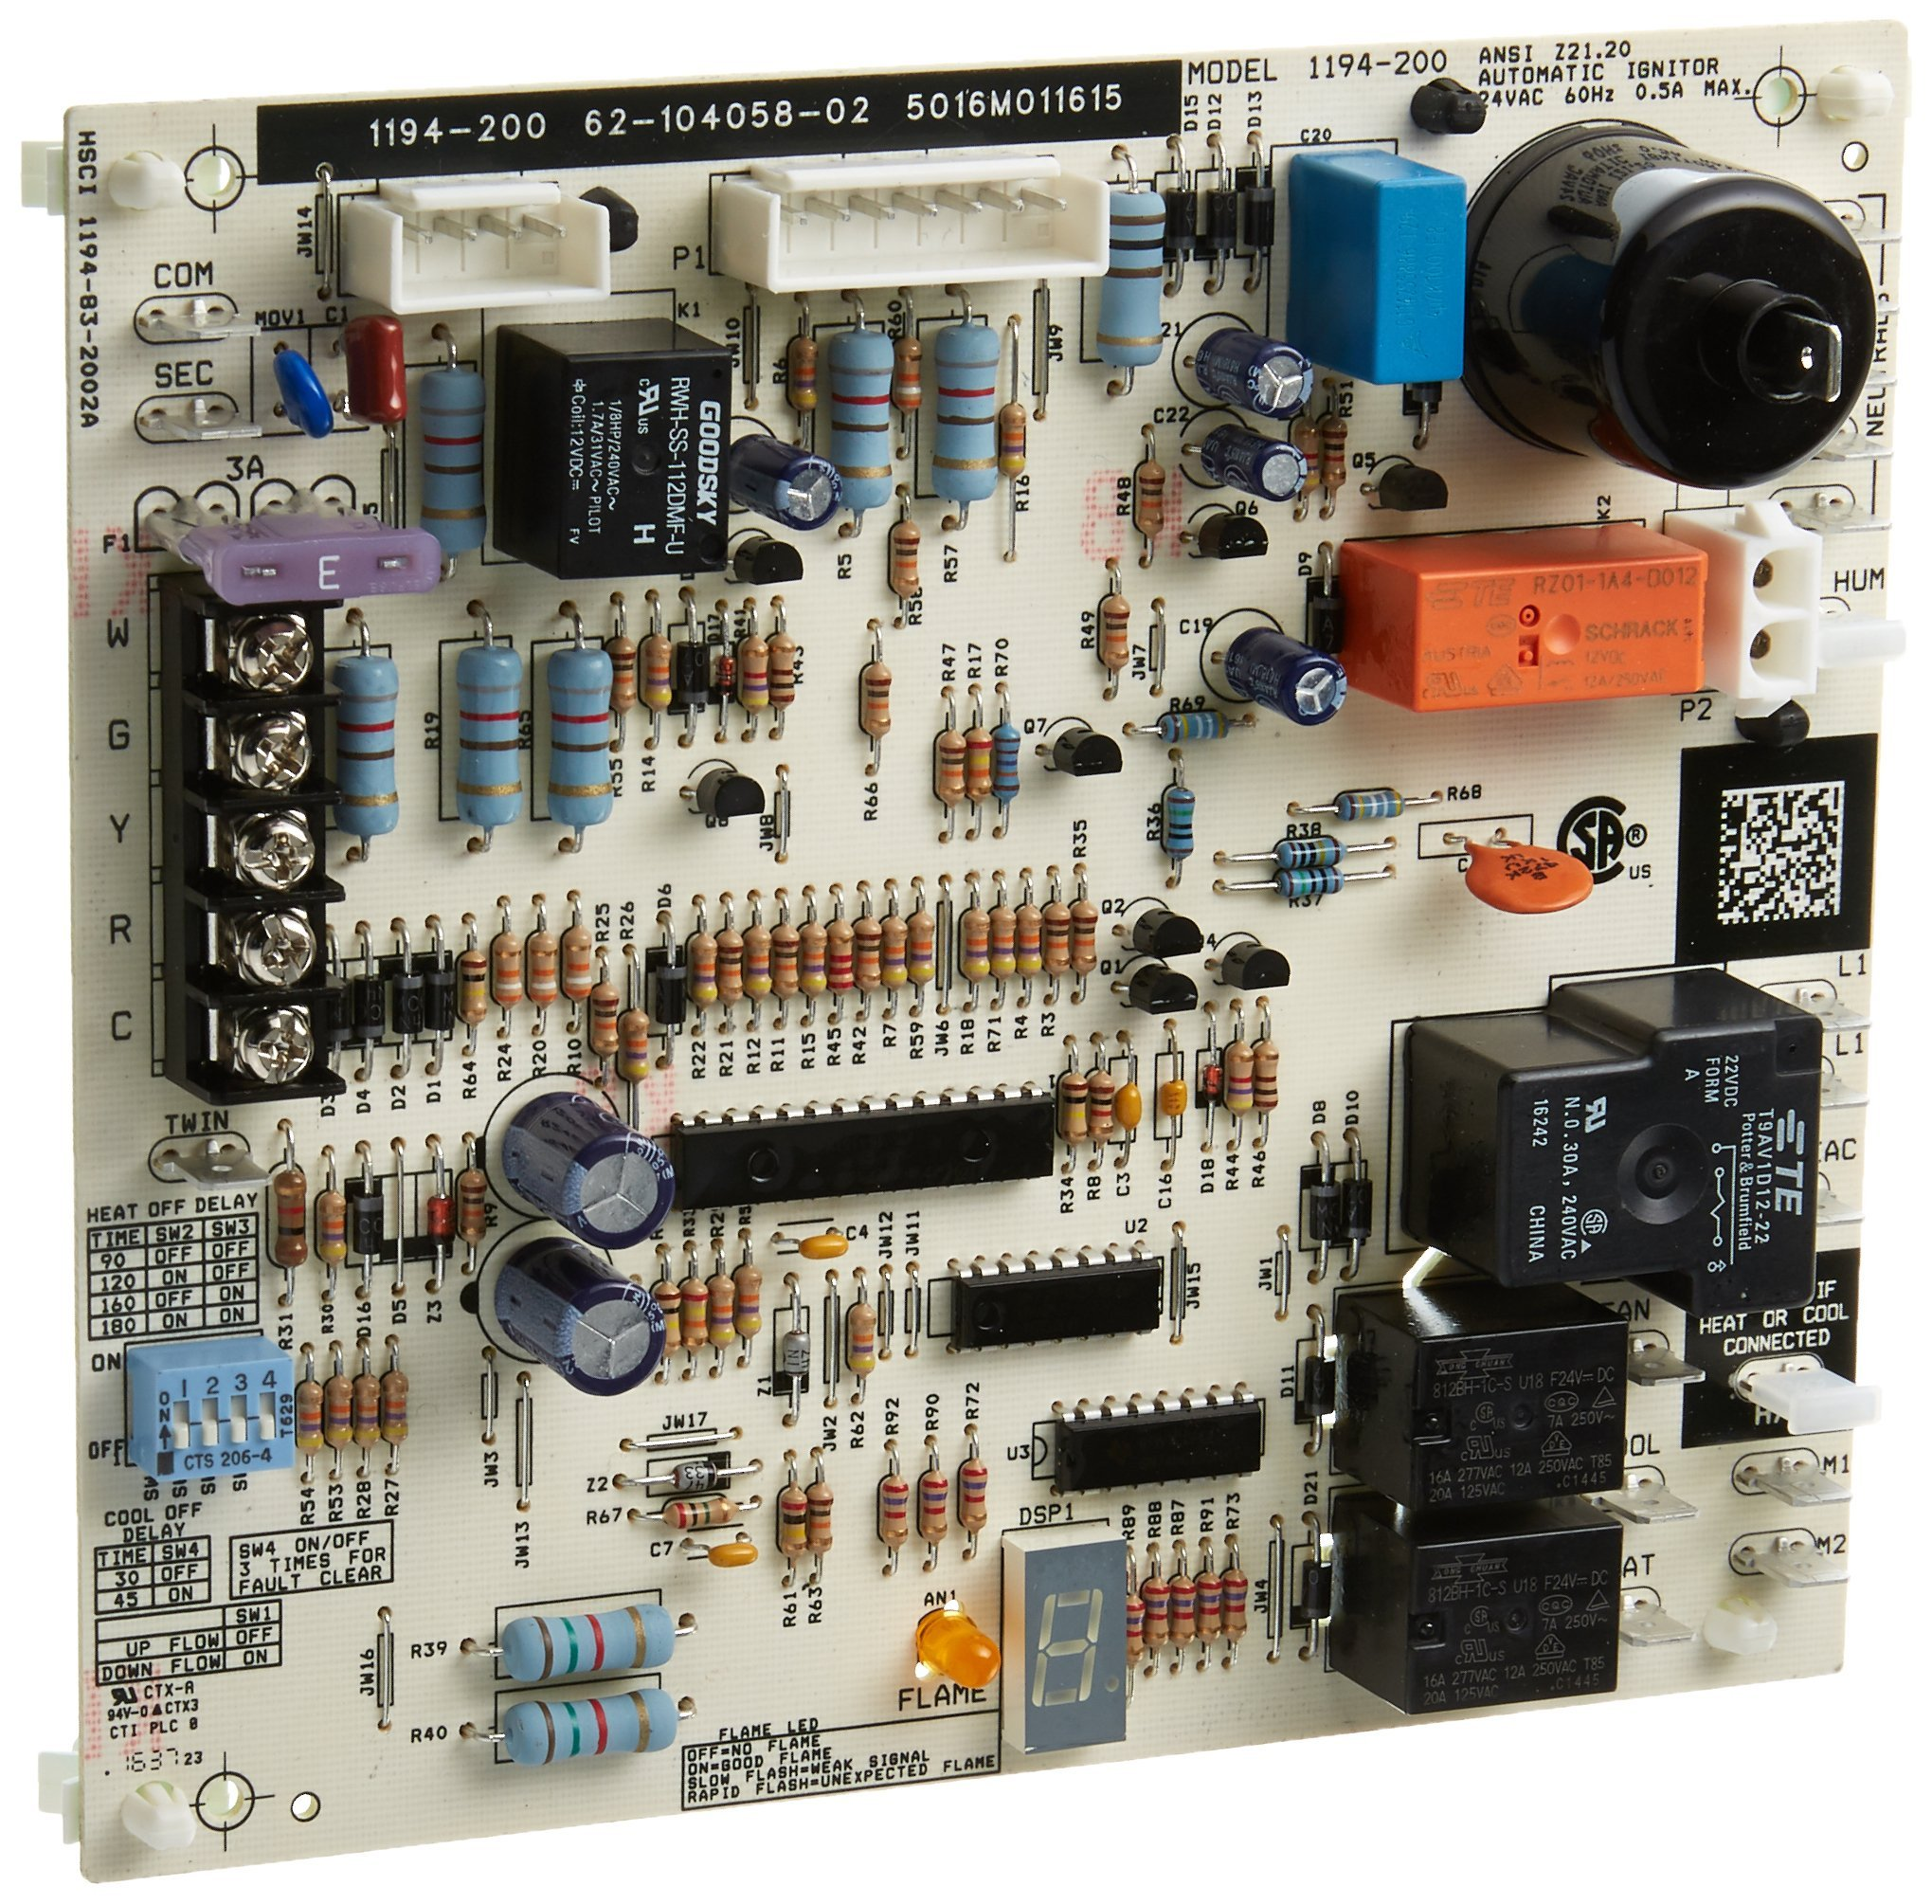 Protech 62-104058-02 Integrated Furnace Control Board